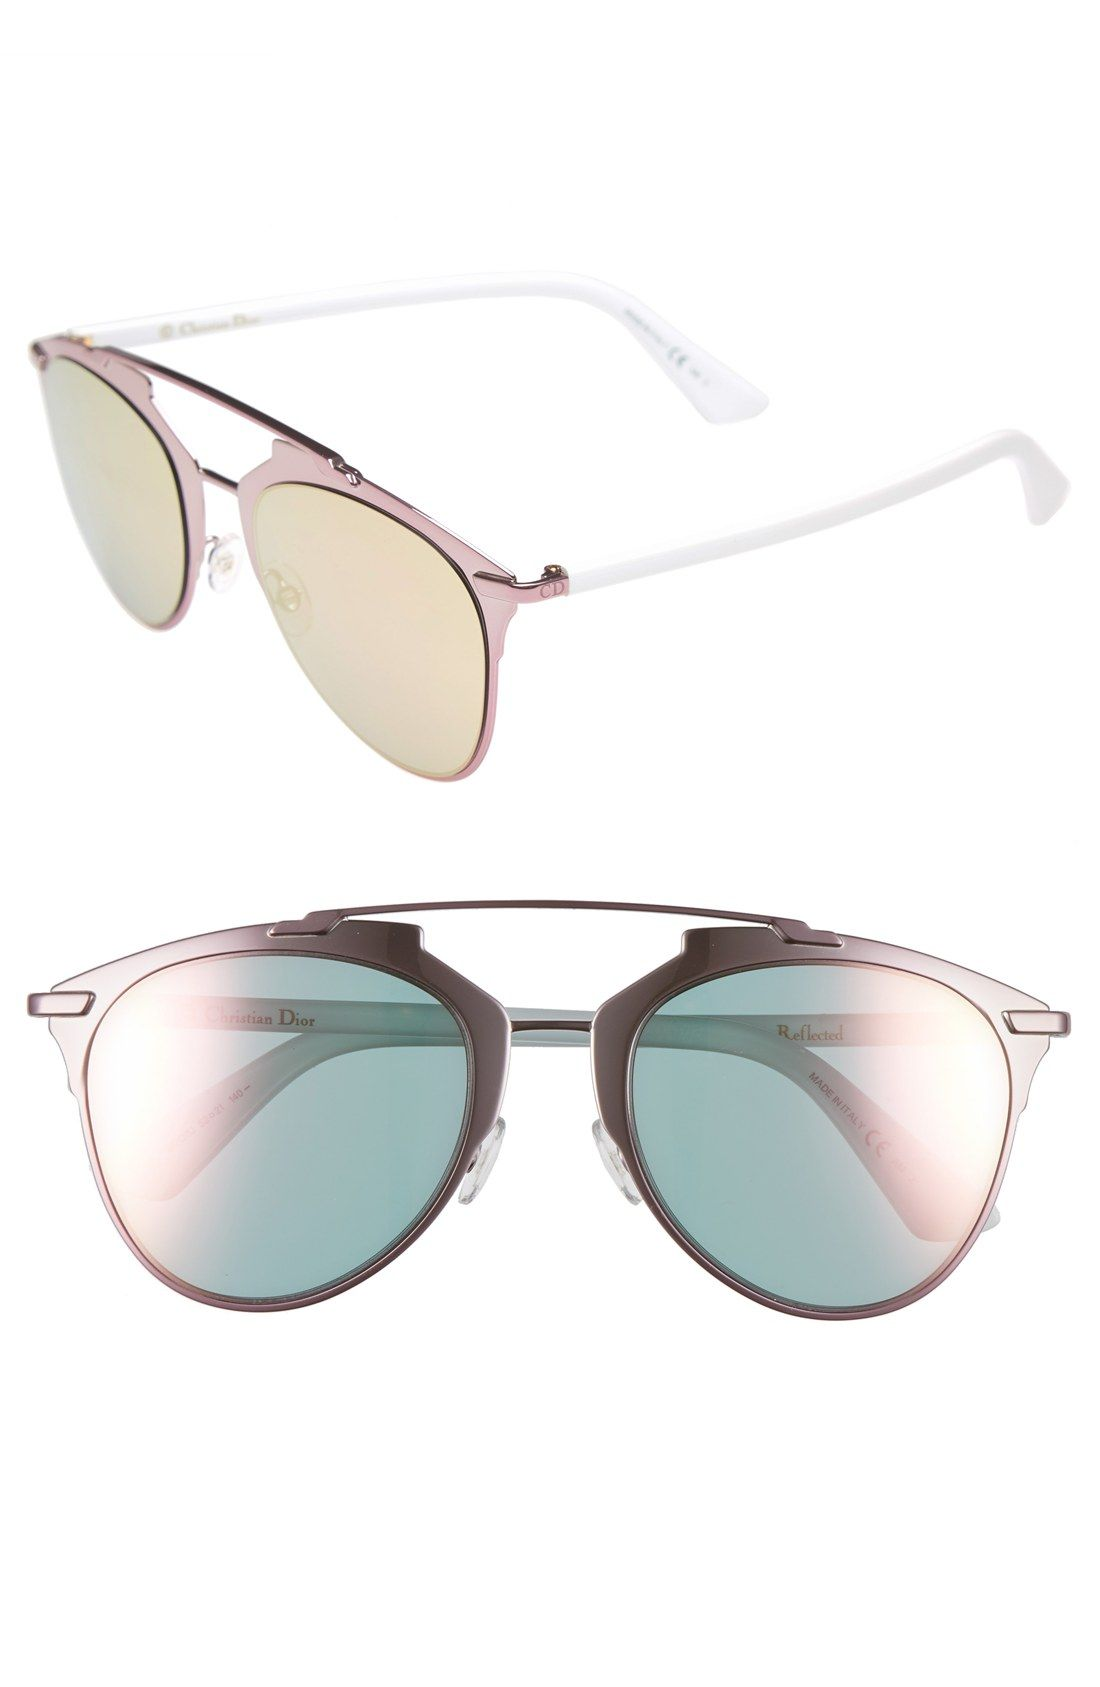 3186443a1c0d Dior  Reflected  52mm Sunglasses